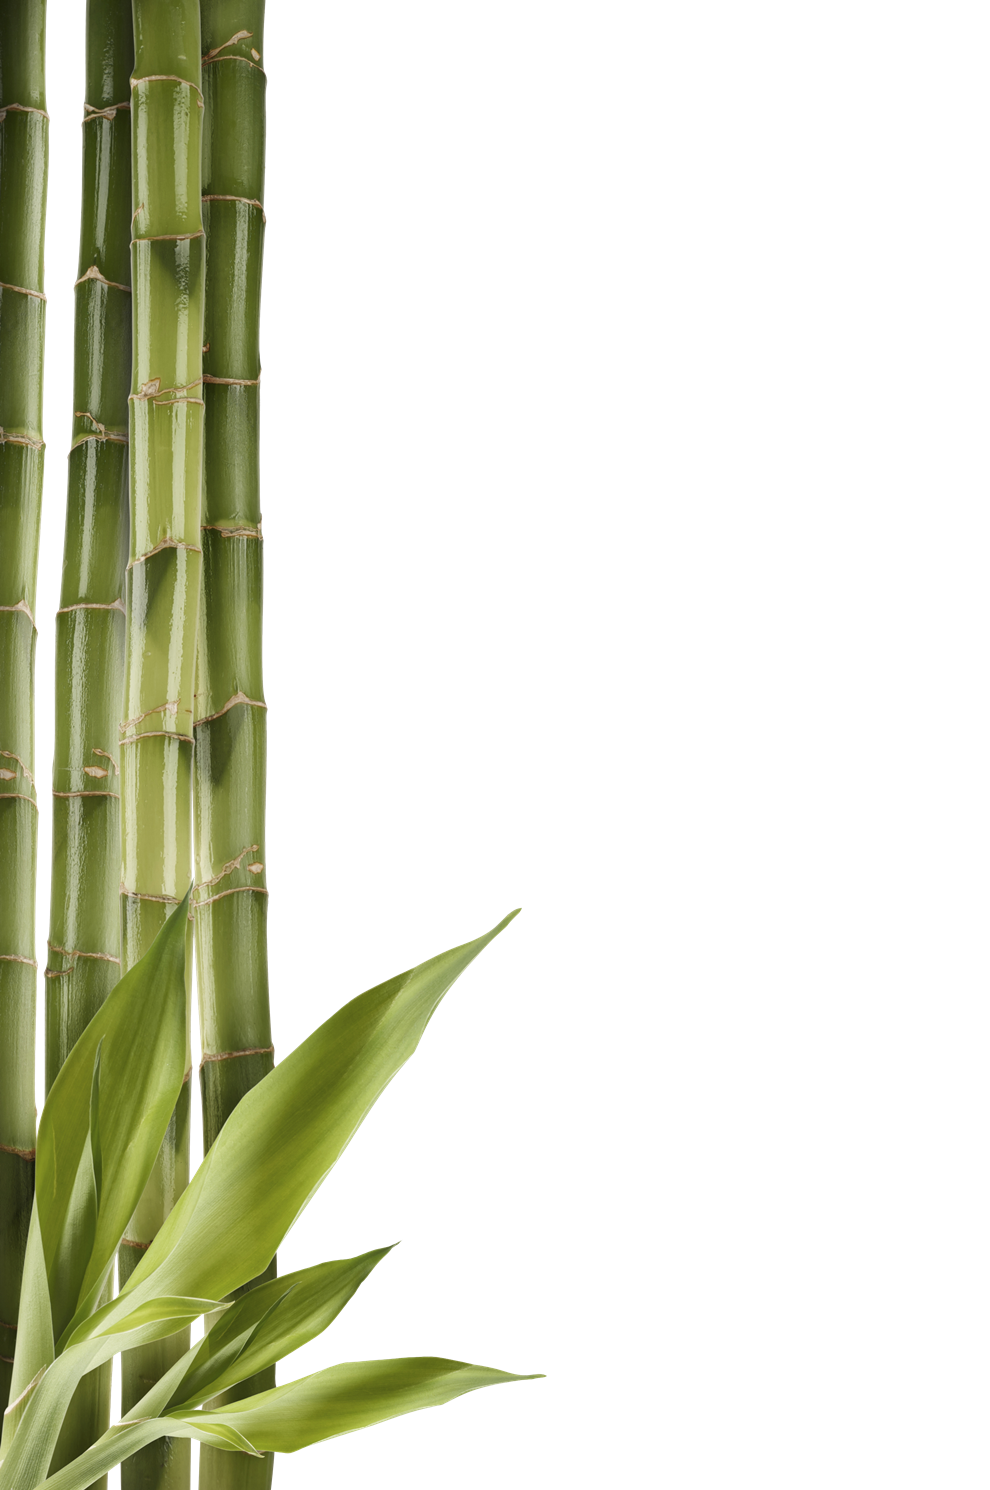 png freeuse stock Stem clipart shoot free. Bamboo transparent real